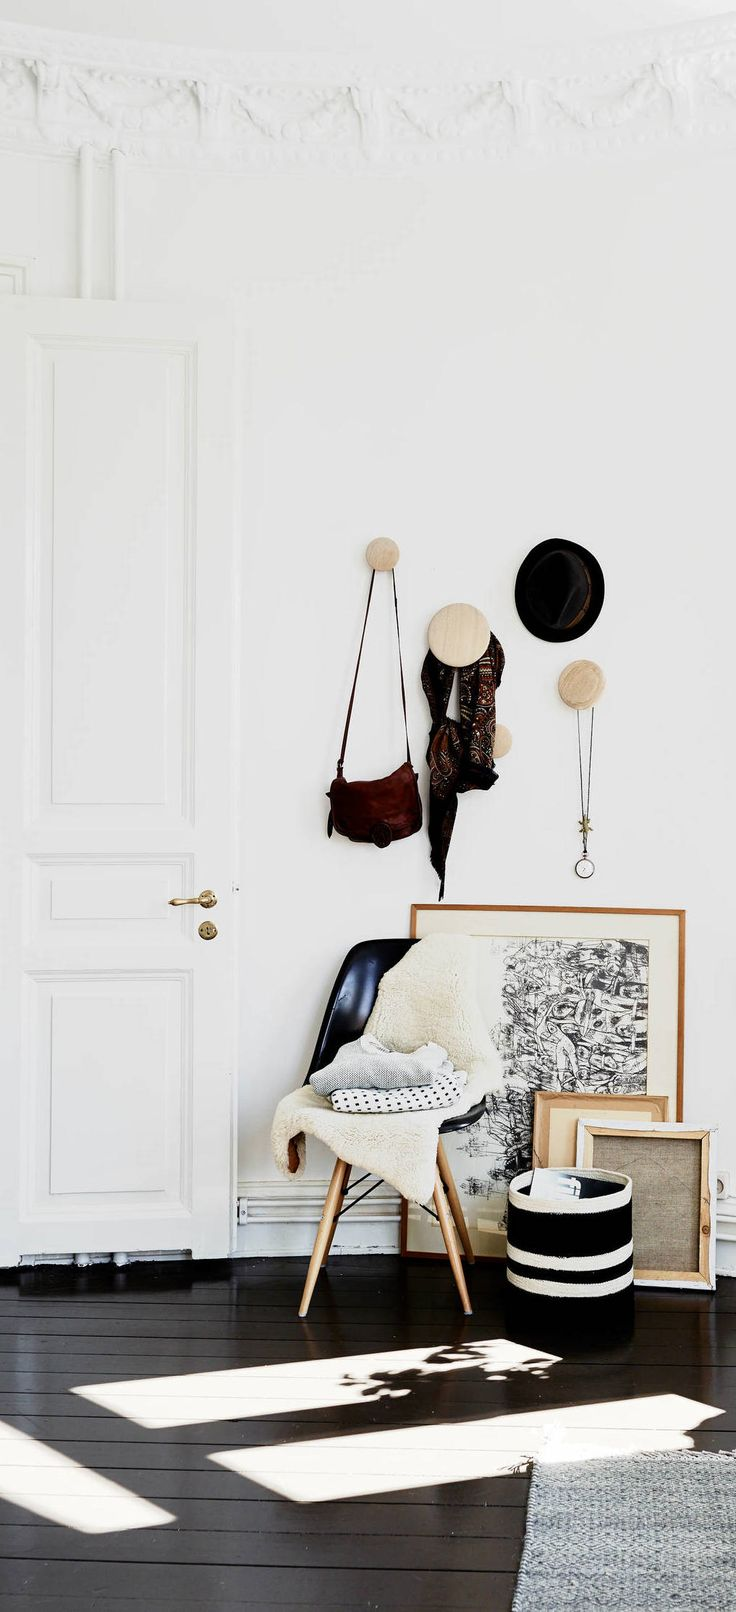 A simple way to jazz up your entry way.